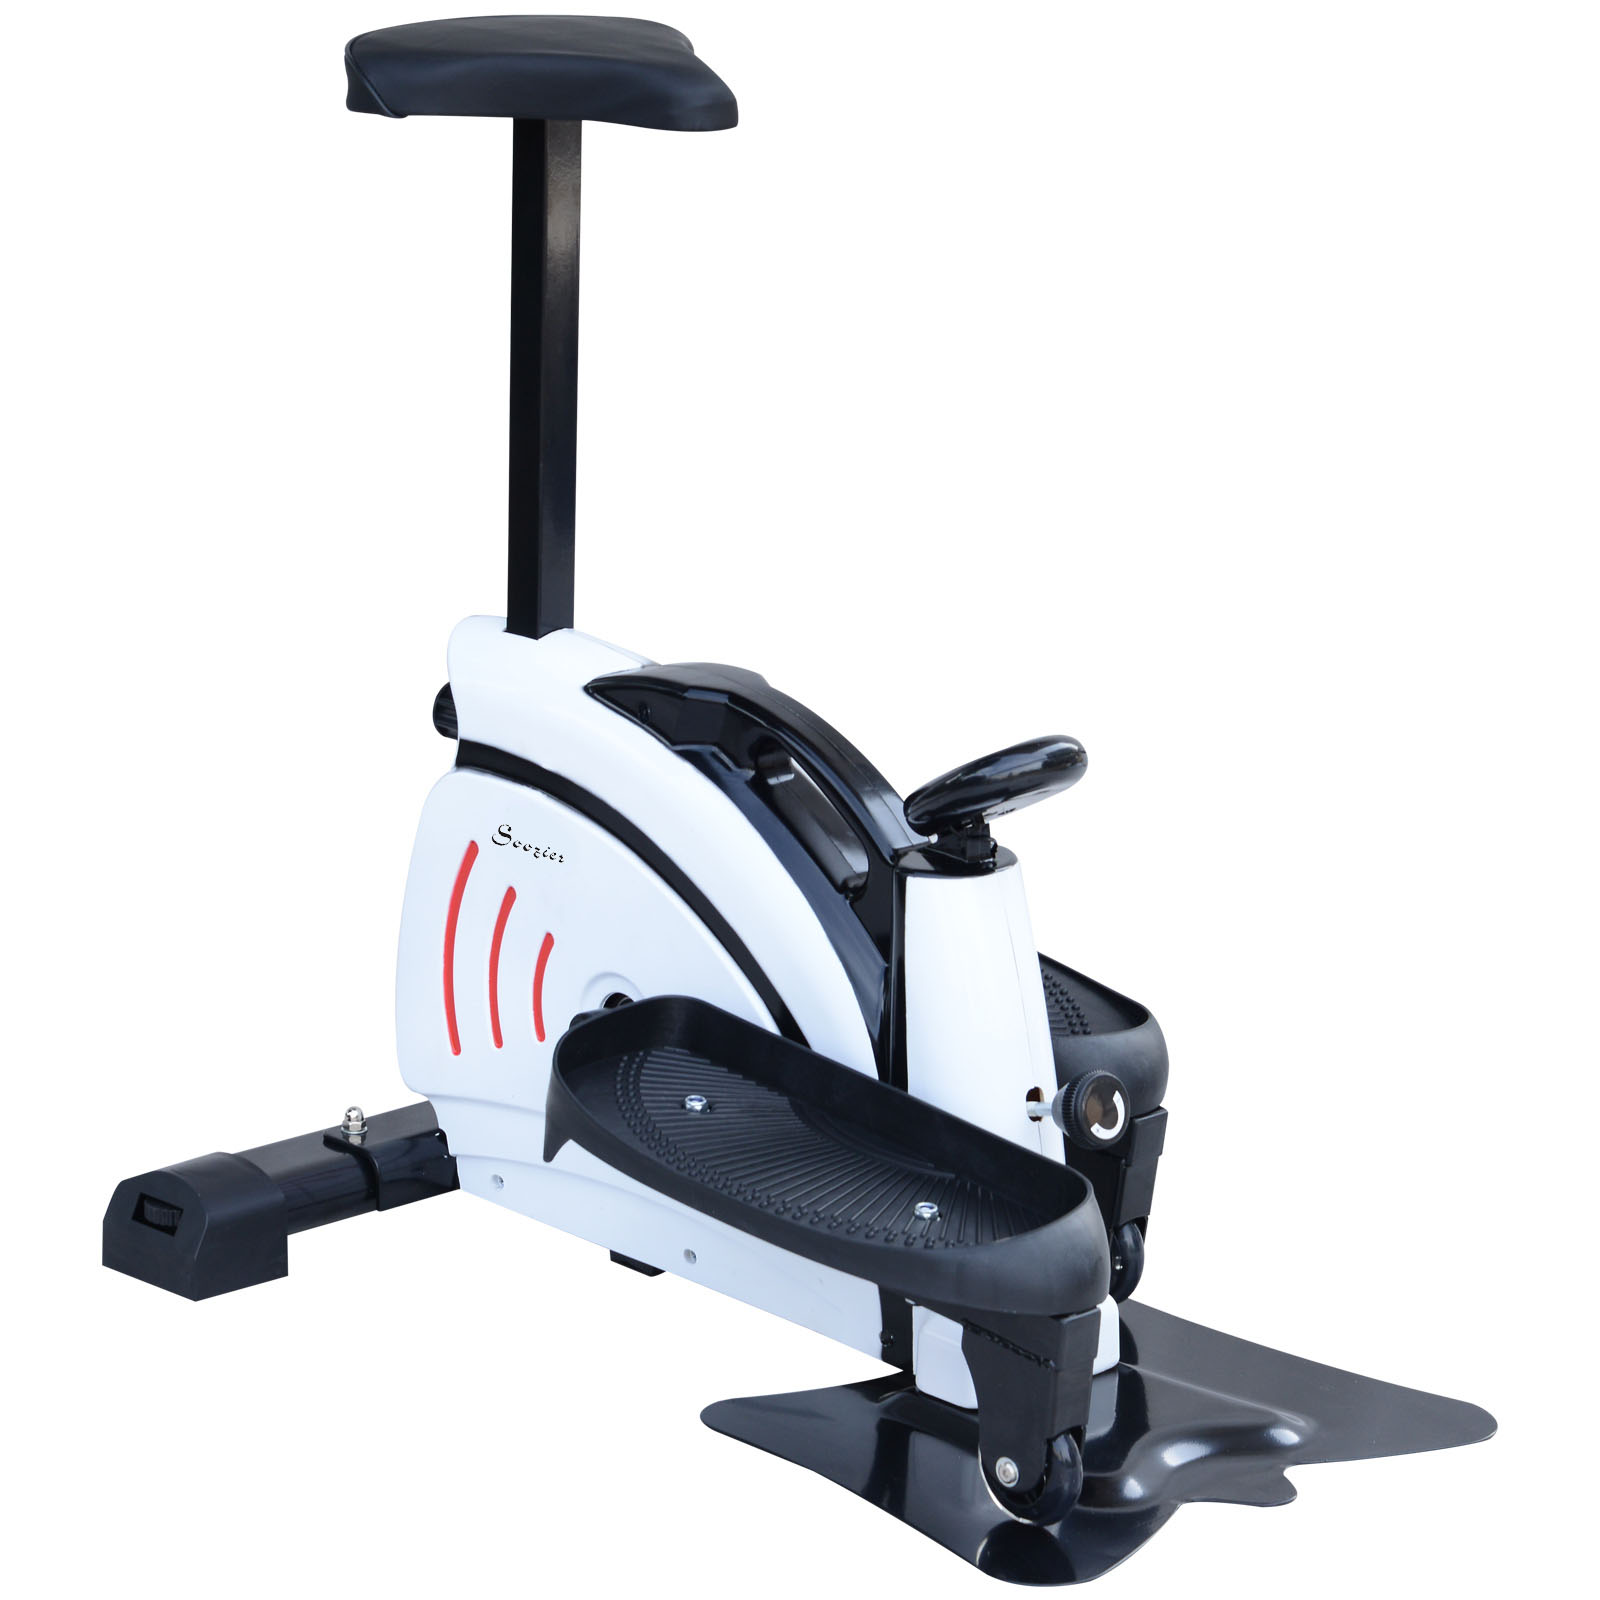 Astounding Cad 119 99 Soozier Mini Elliptical Machine W Display Complete Home Design Collection Epsylindsey Bellcom